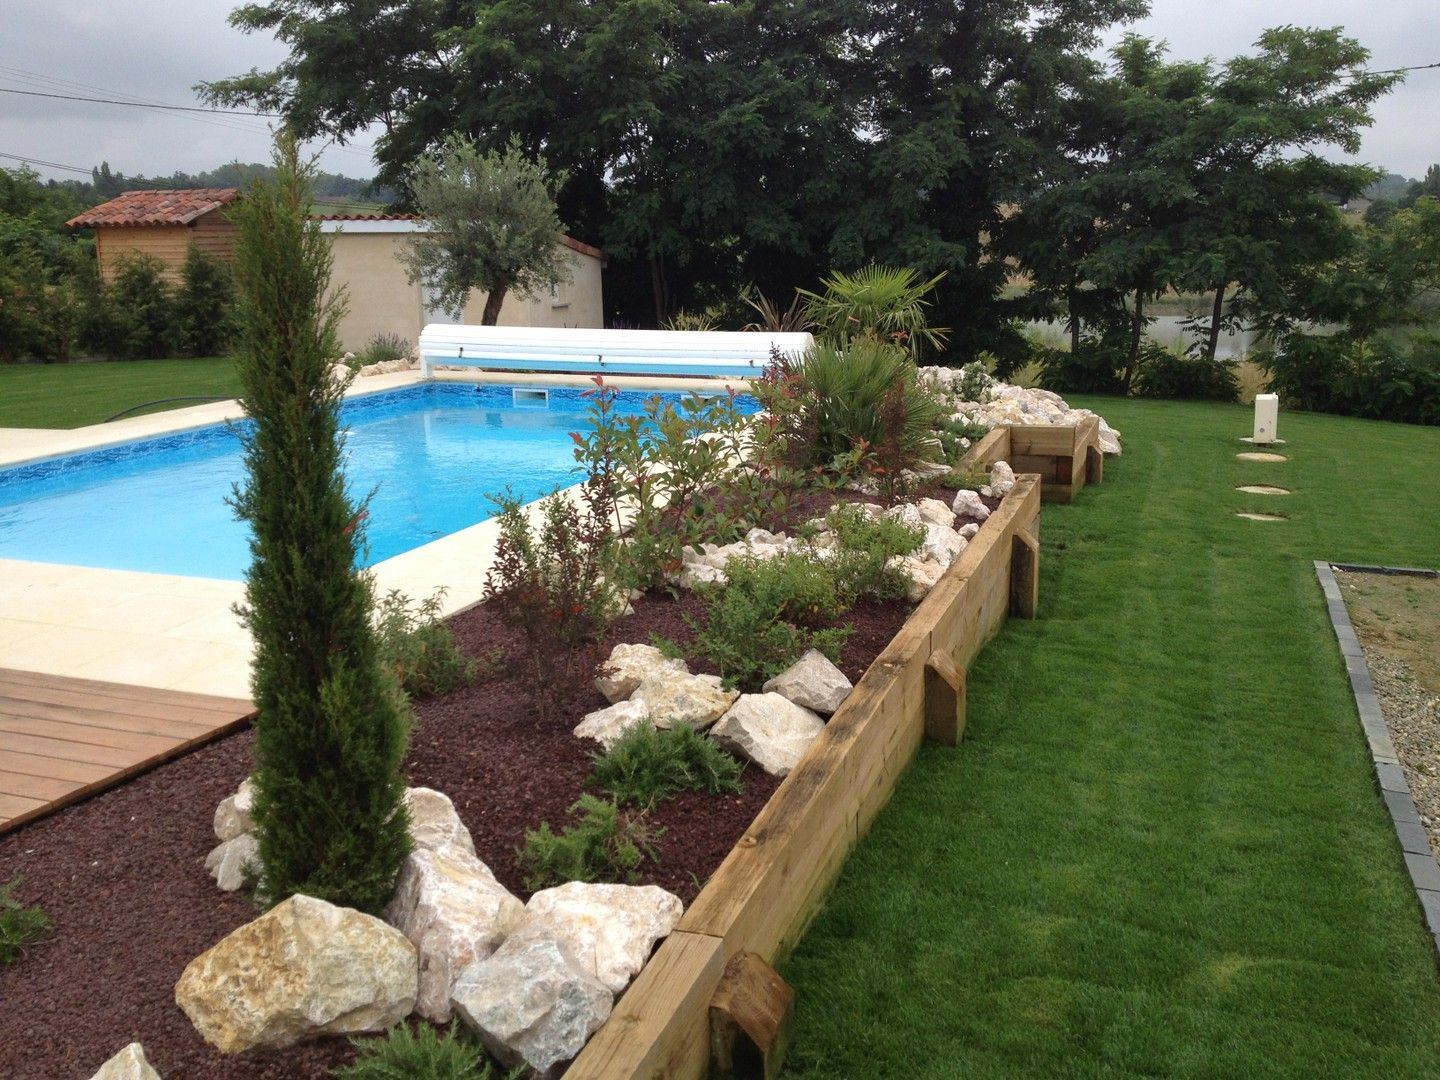 Am nagement tour de piscine pools pinterest swimming for Amenagement de piscine